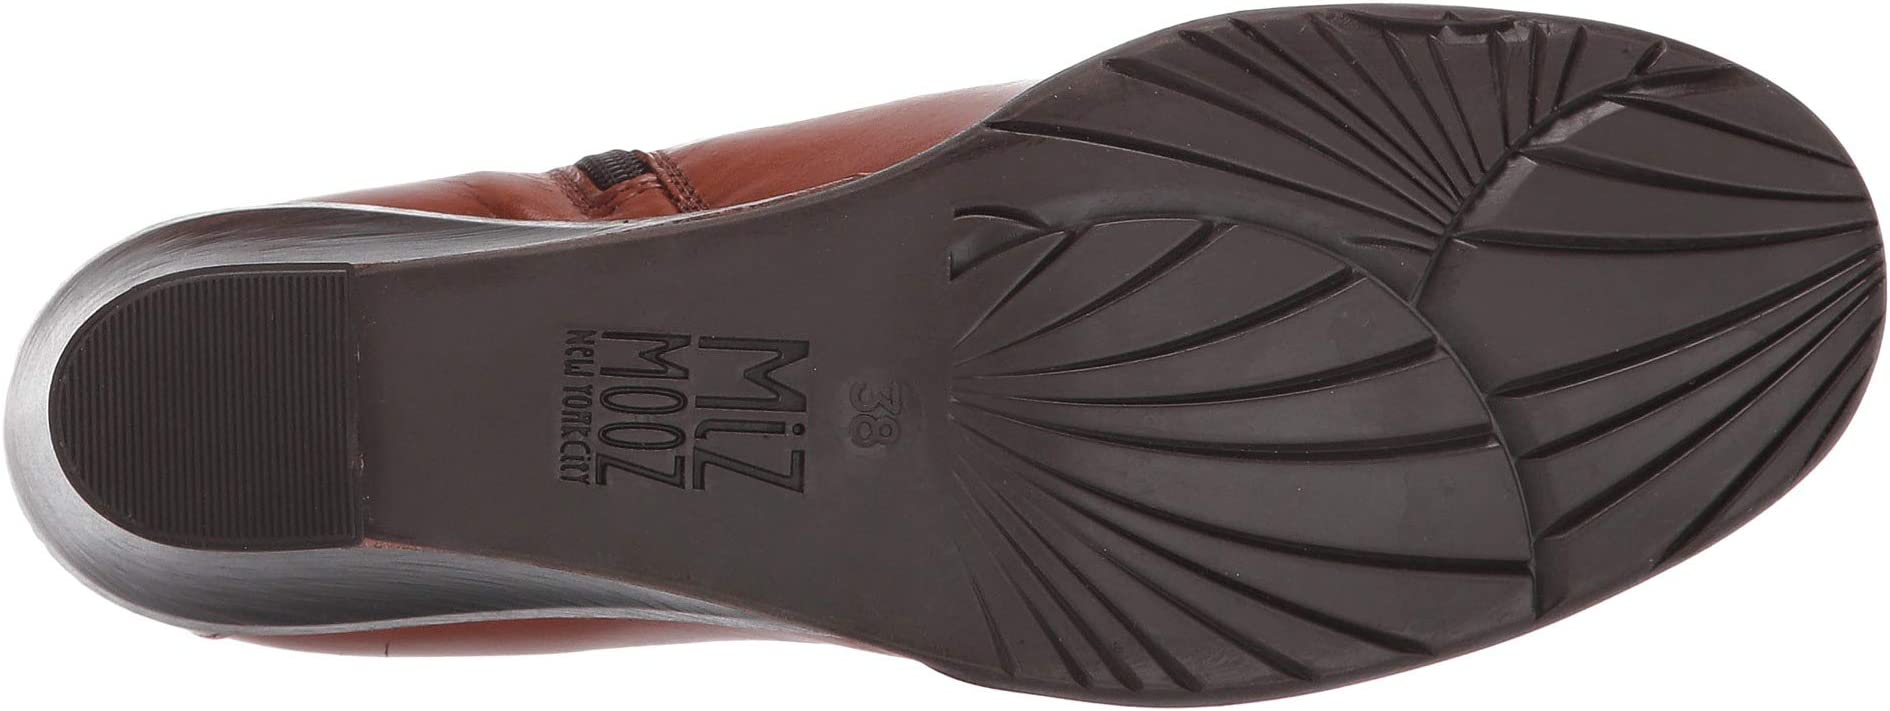 Miz Mooz Nimah | Women's shoes | 2020 Newest